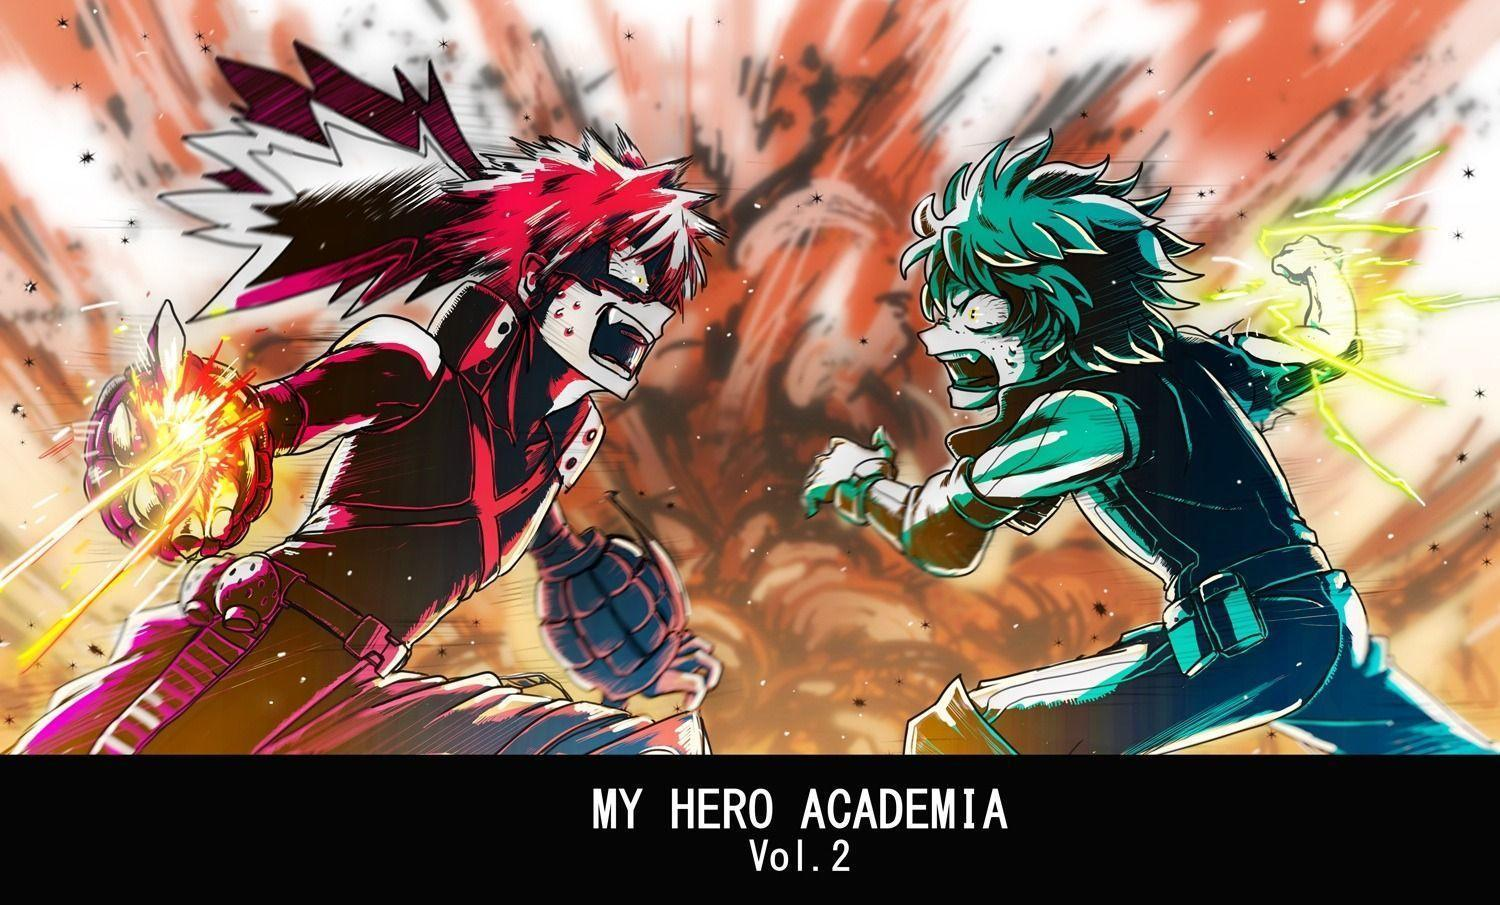 Made for fans who love anime manga. My Hero Academia Wallpapers - Wallpaper Cave